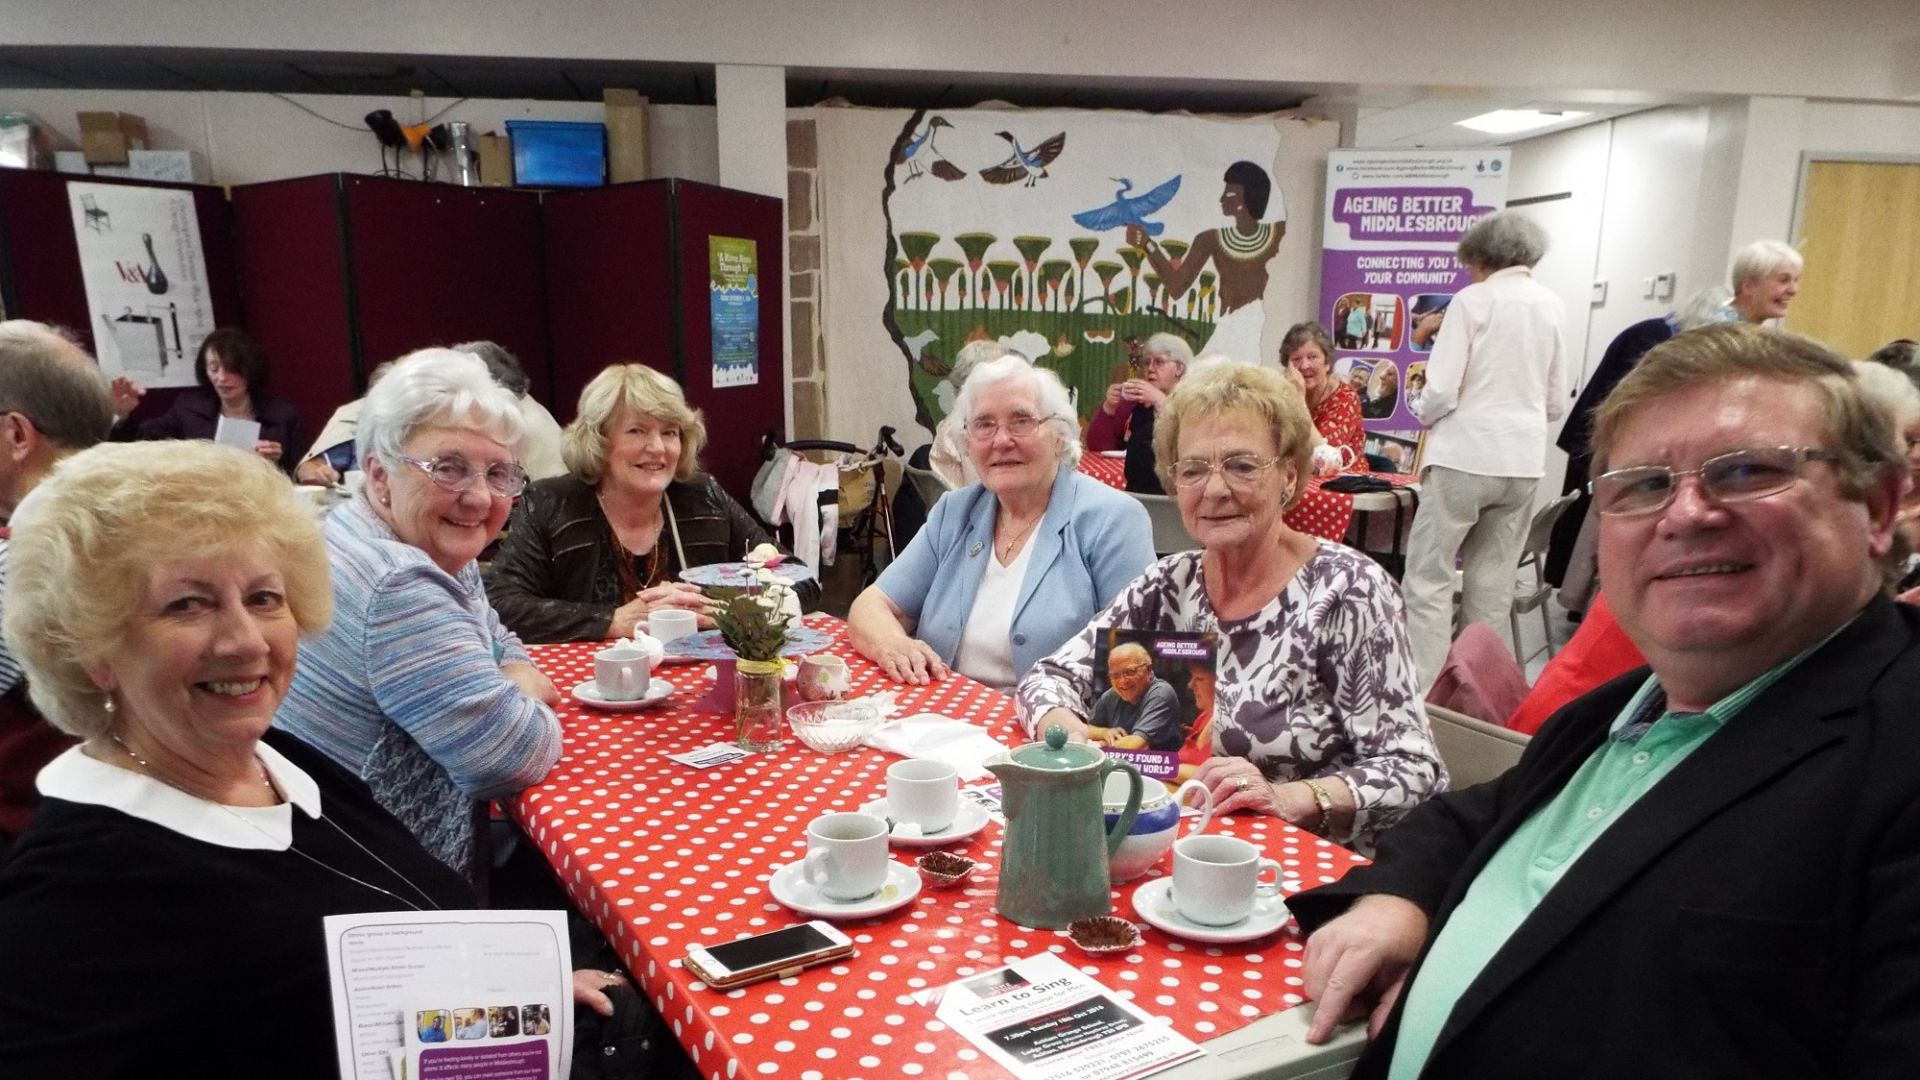 UK Older People's Day - Ageing Better Middlesbrough